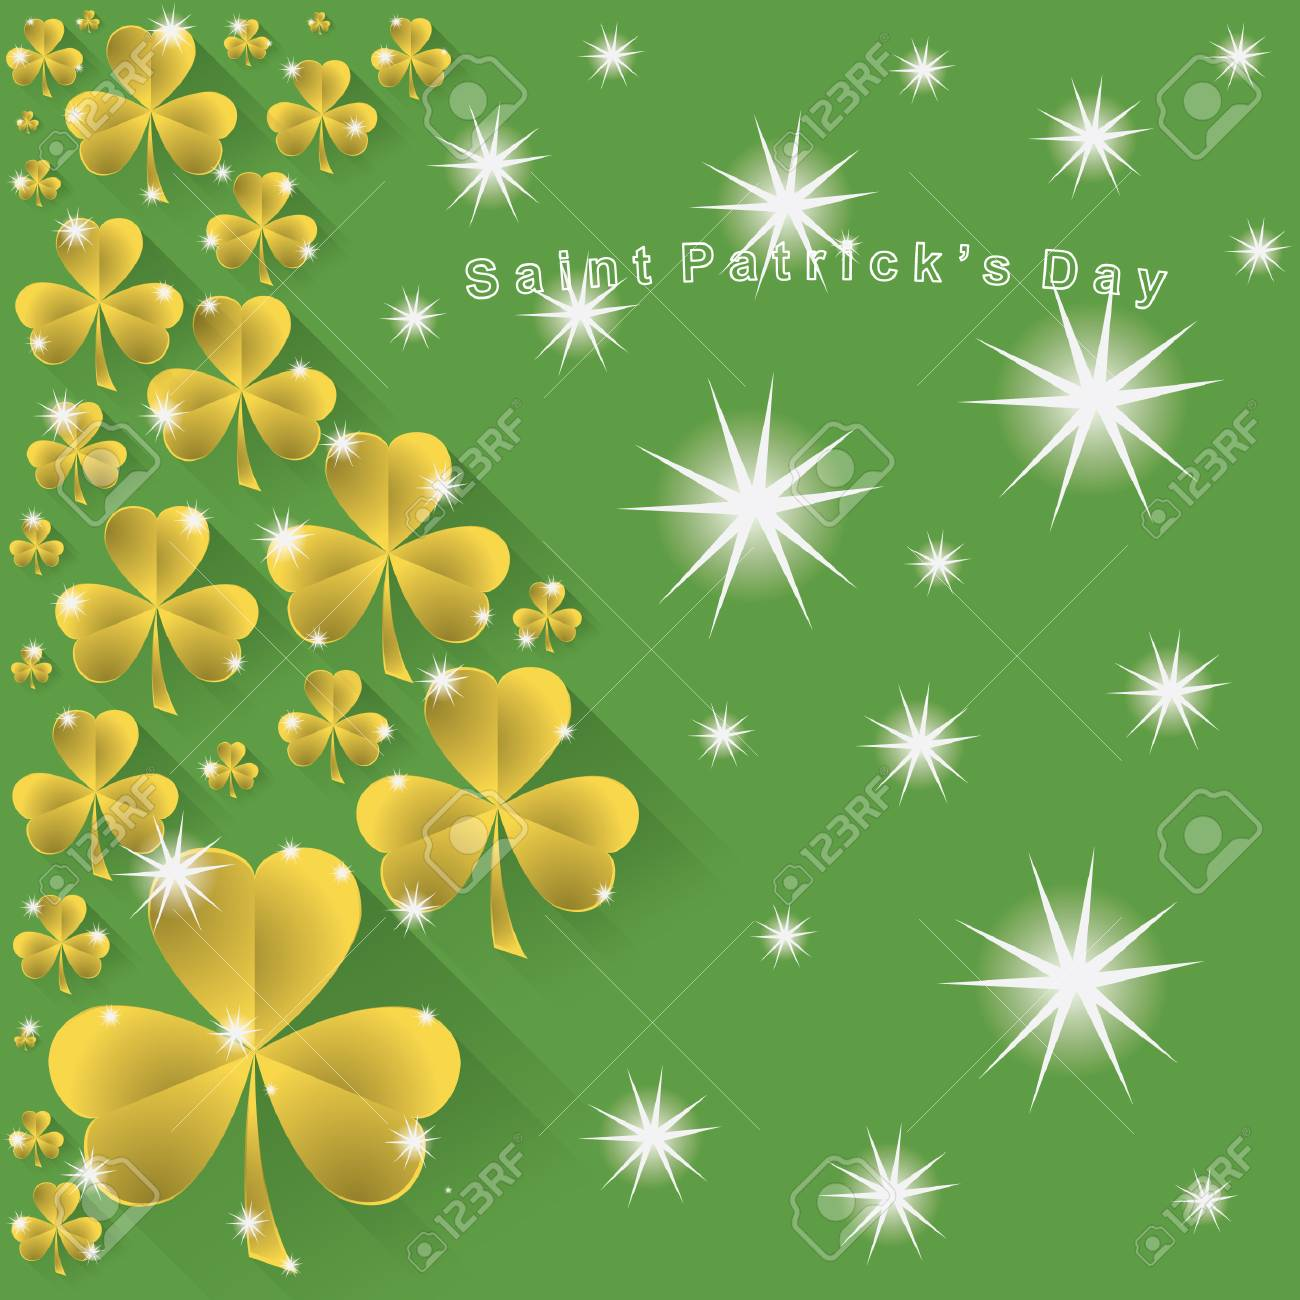 Saint Patrick S Day Wallpaper Royalty Free Cliparts Vectors And